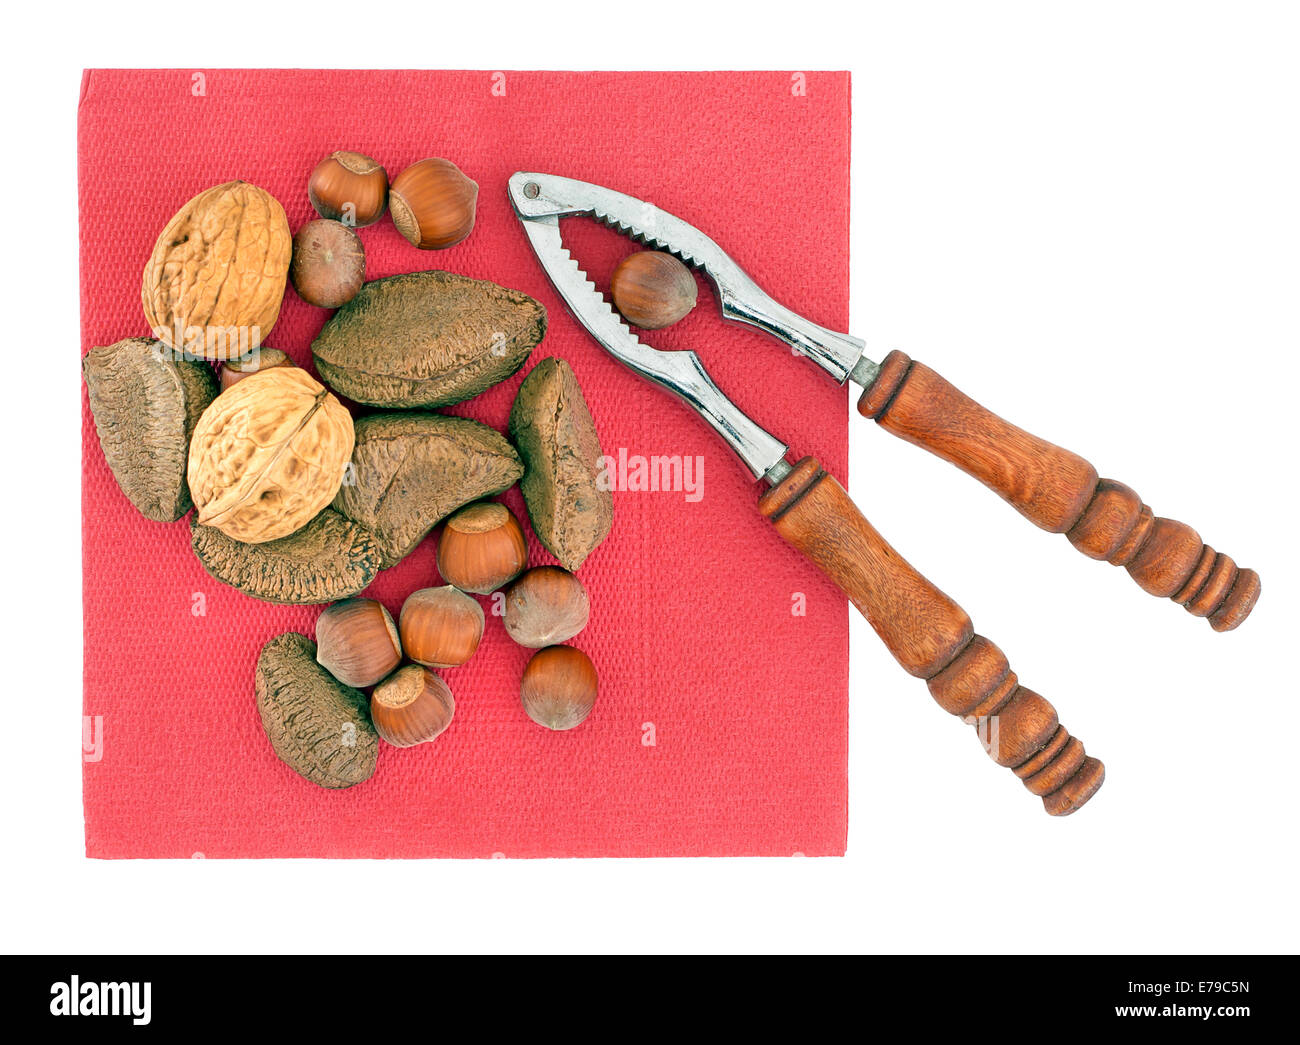 Assorted nuts. Christmas or winter treat. - Stock Image